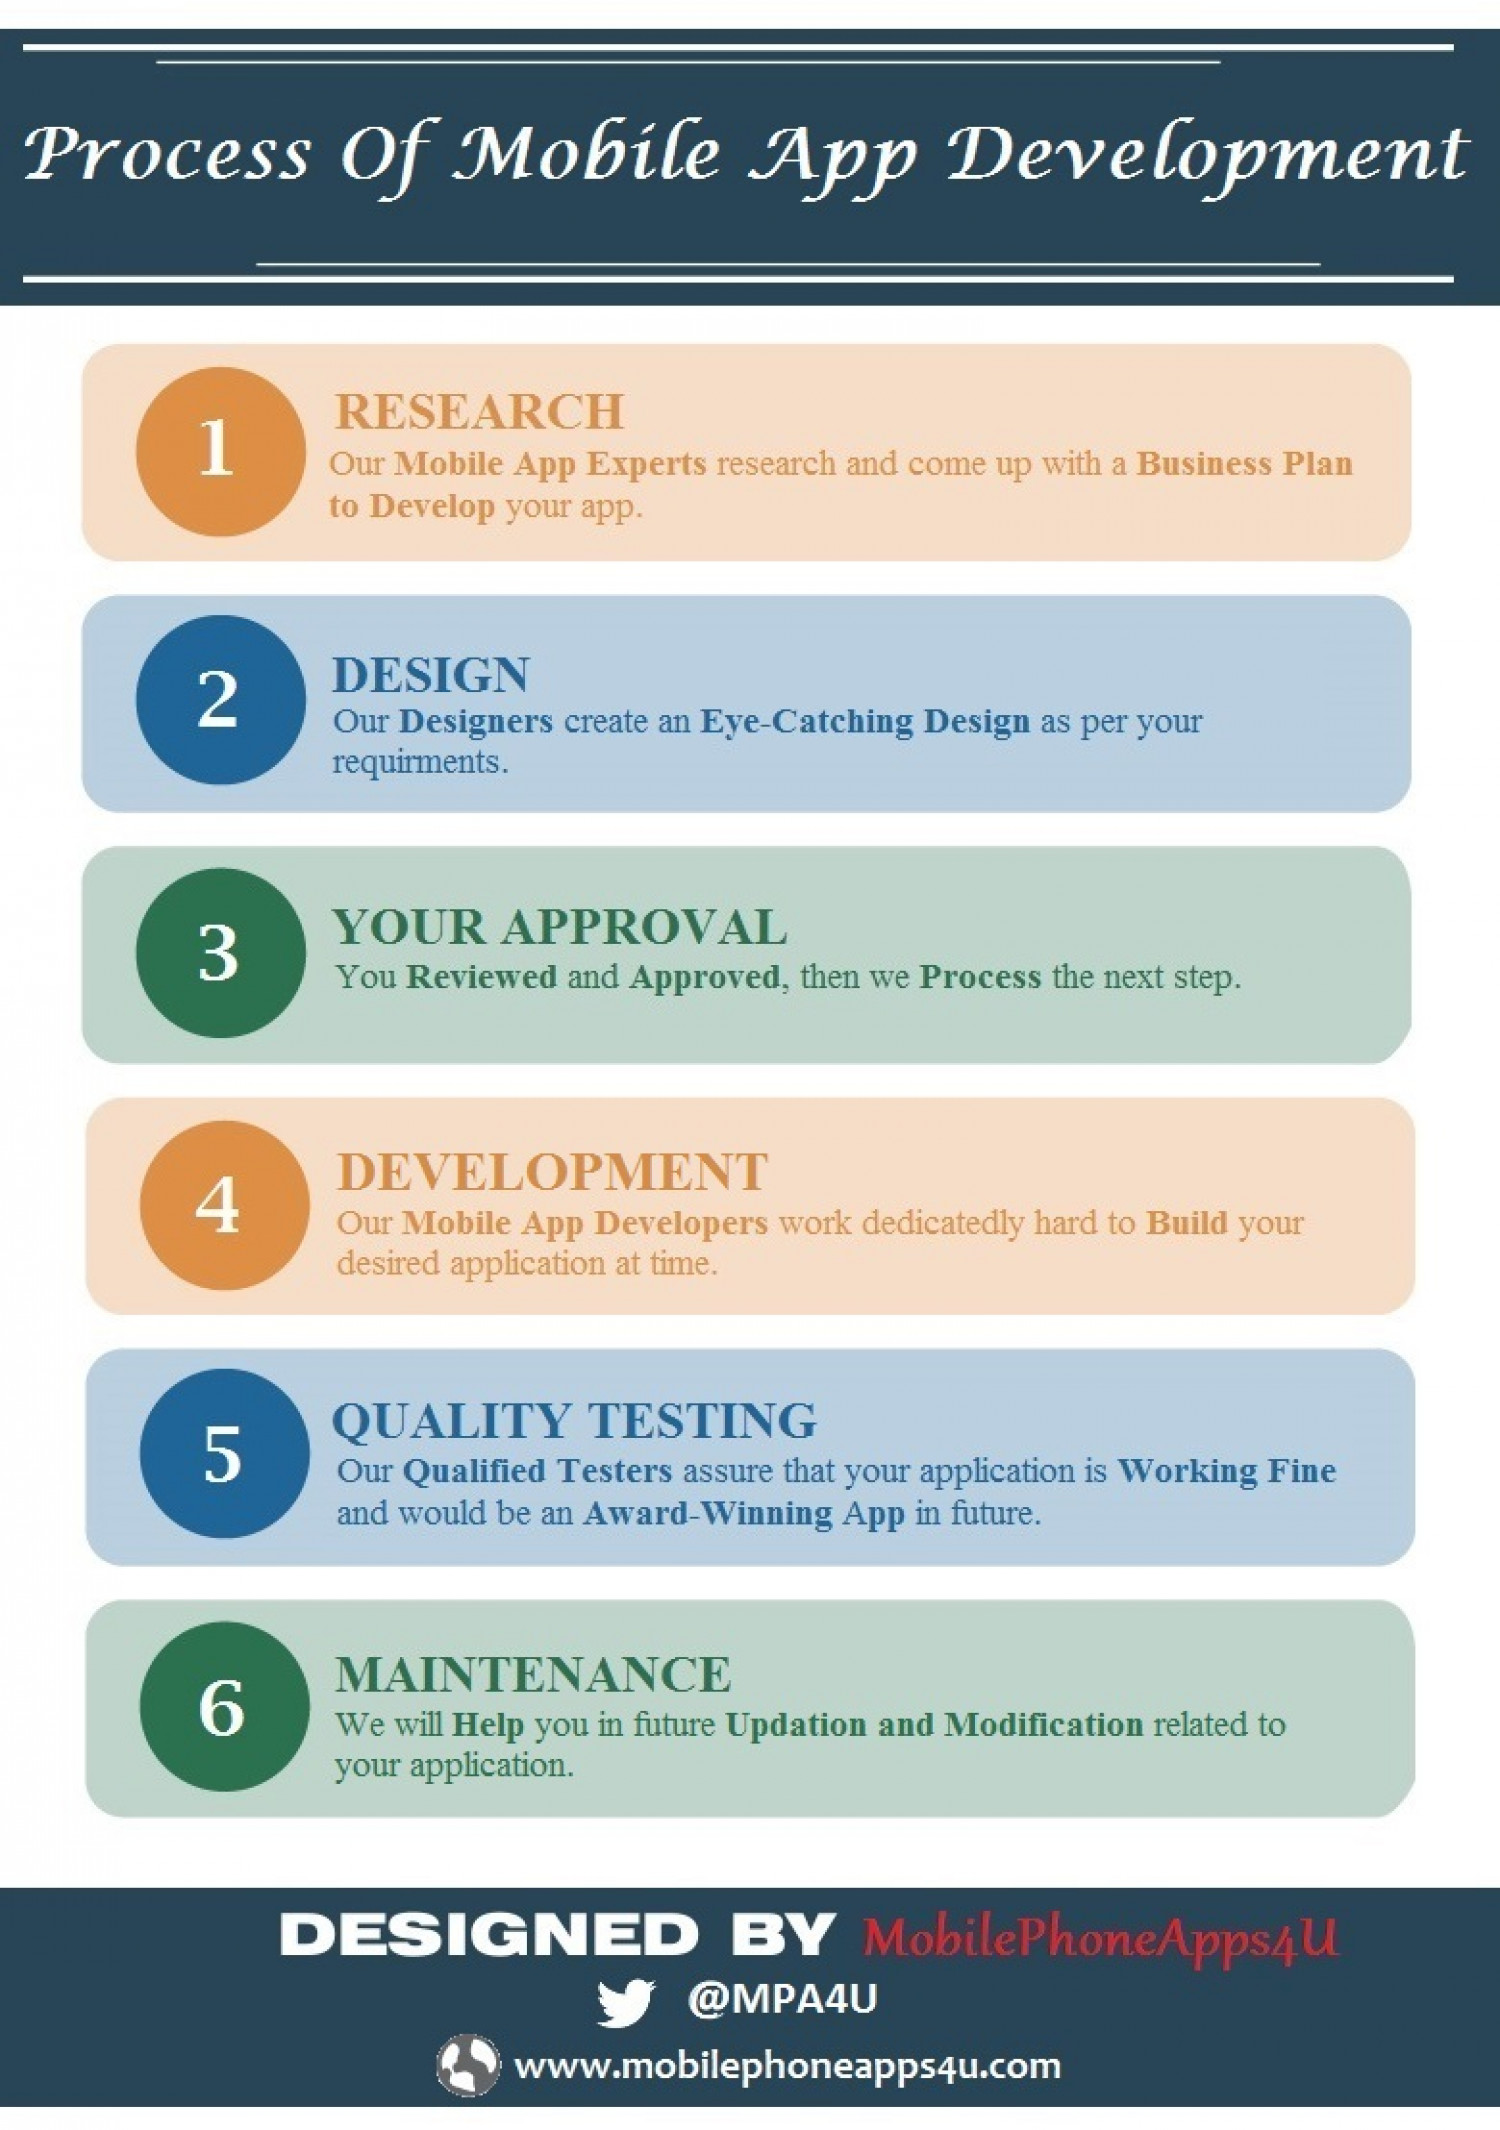 Six Basic Steps of Mobile App Development Infographic